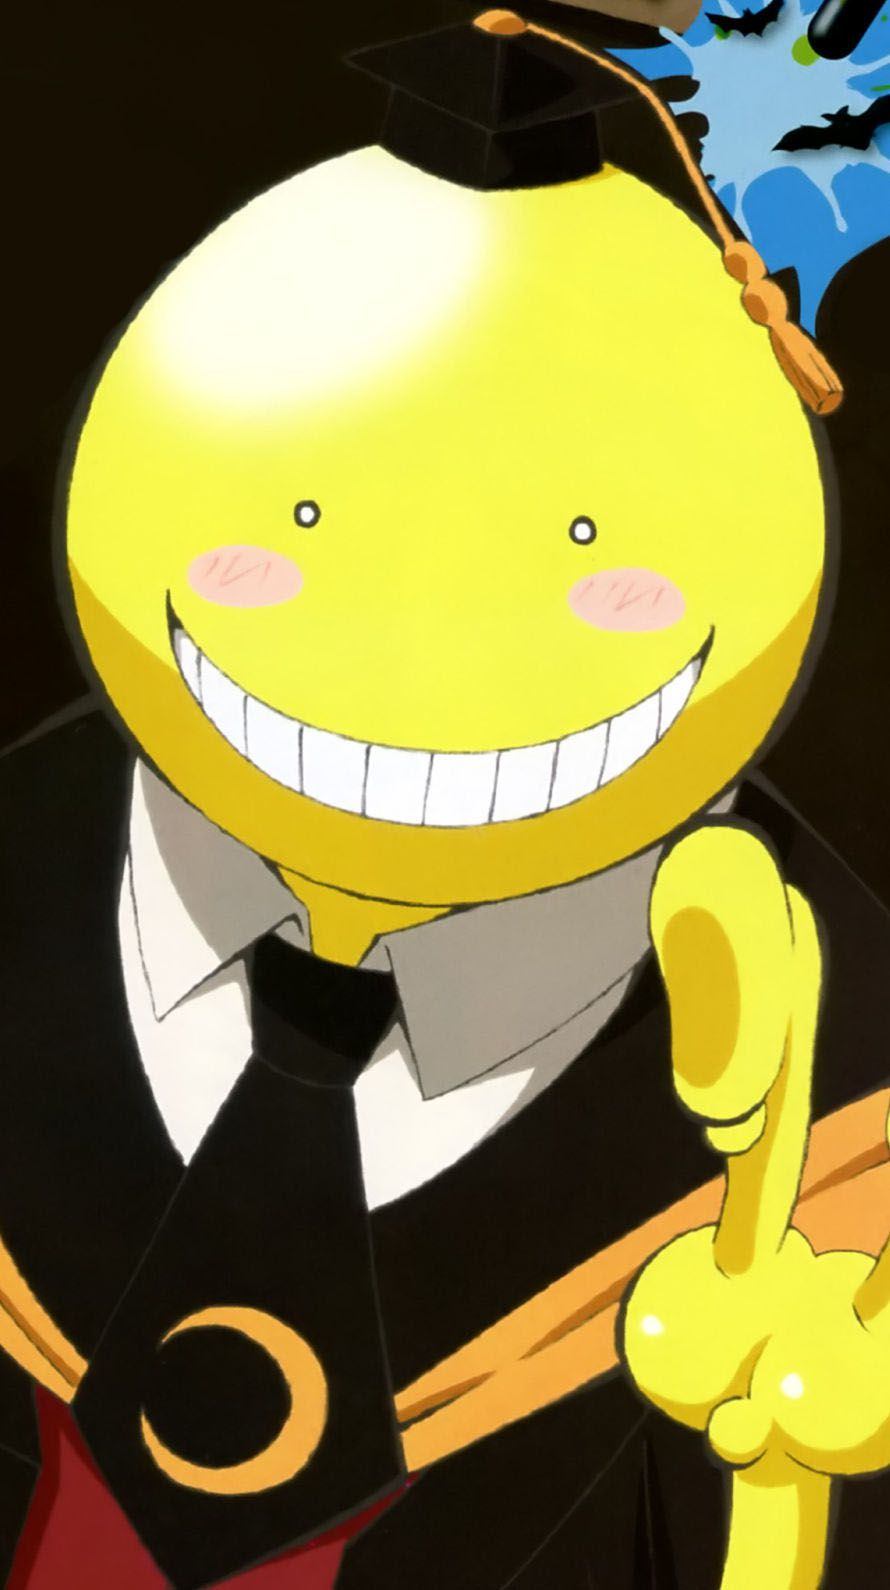 27604_Assassination_Classroom_iPhone